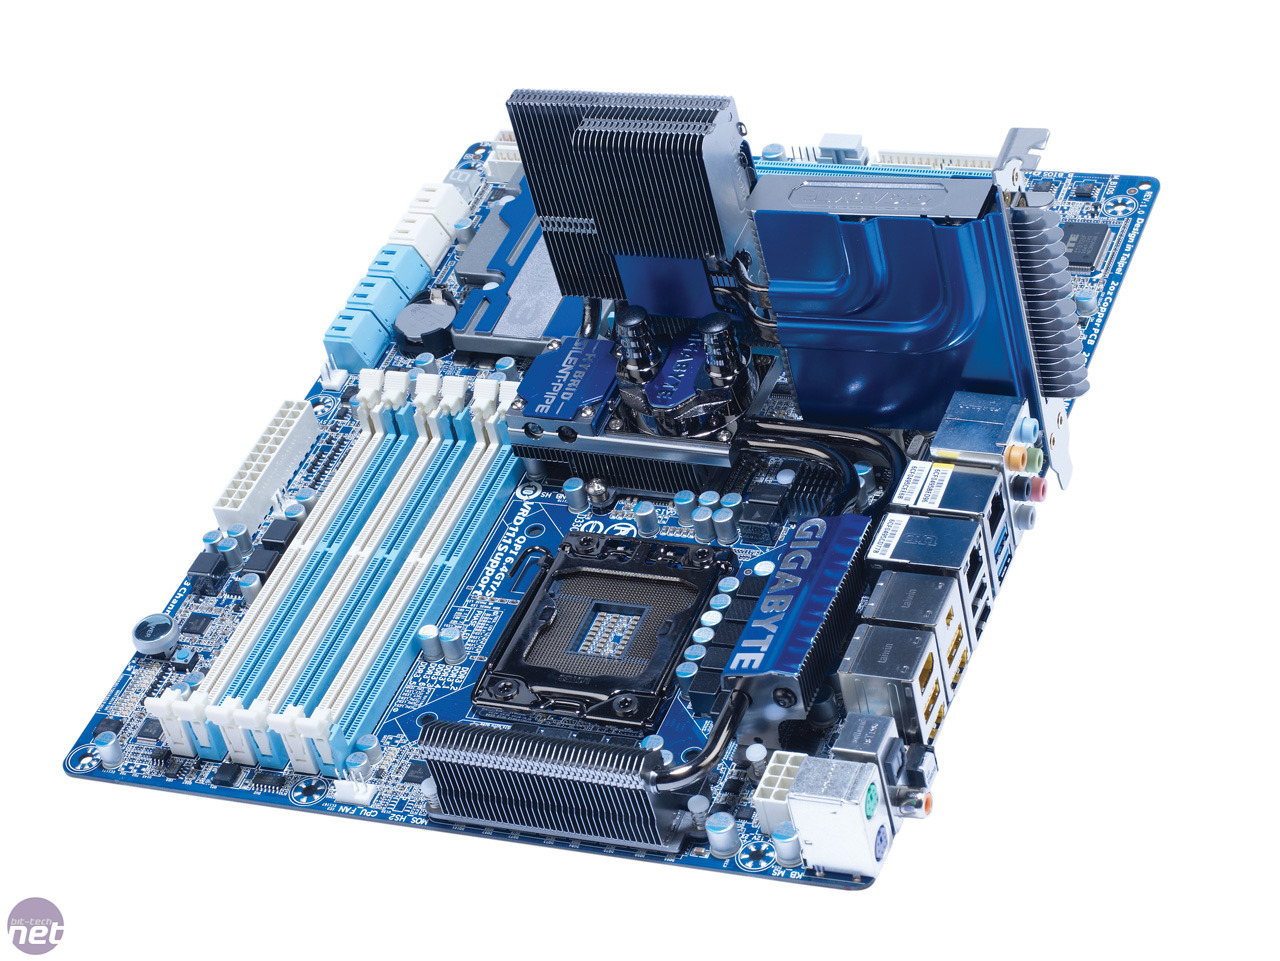 Gigabyte GA-X58A-UD7 Motherboard Review | bit-tech net